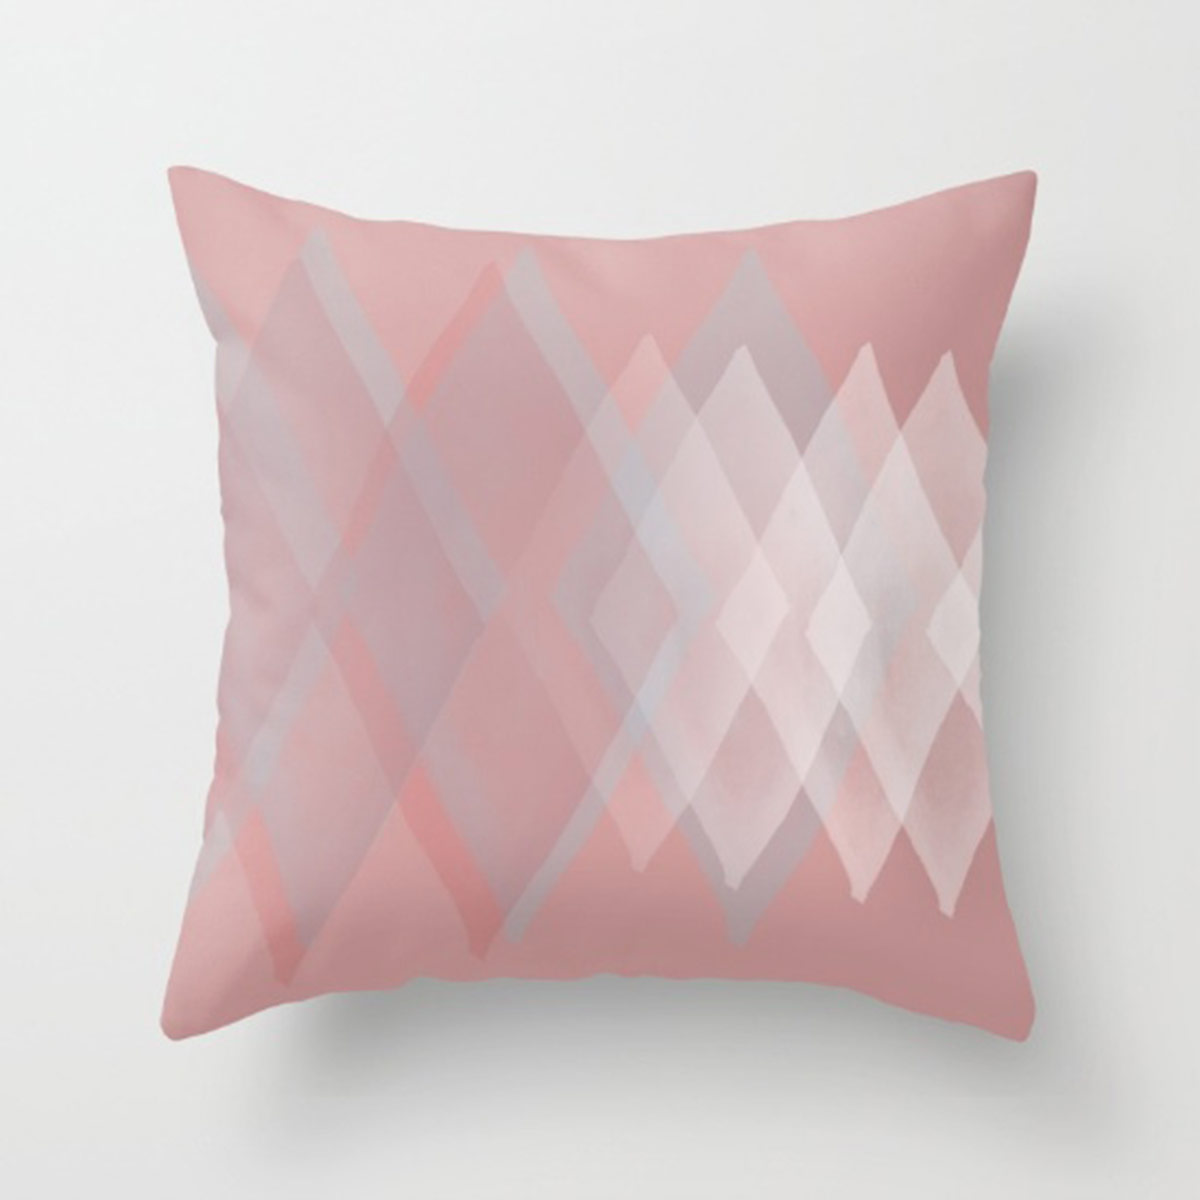 pink-pastels-pillows1200